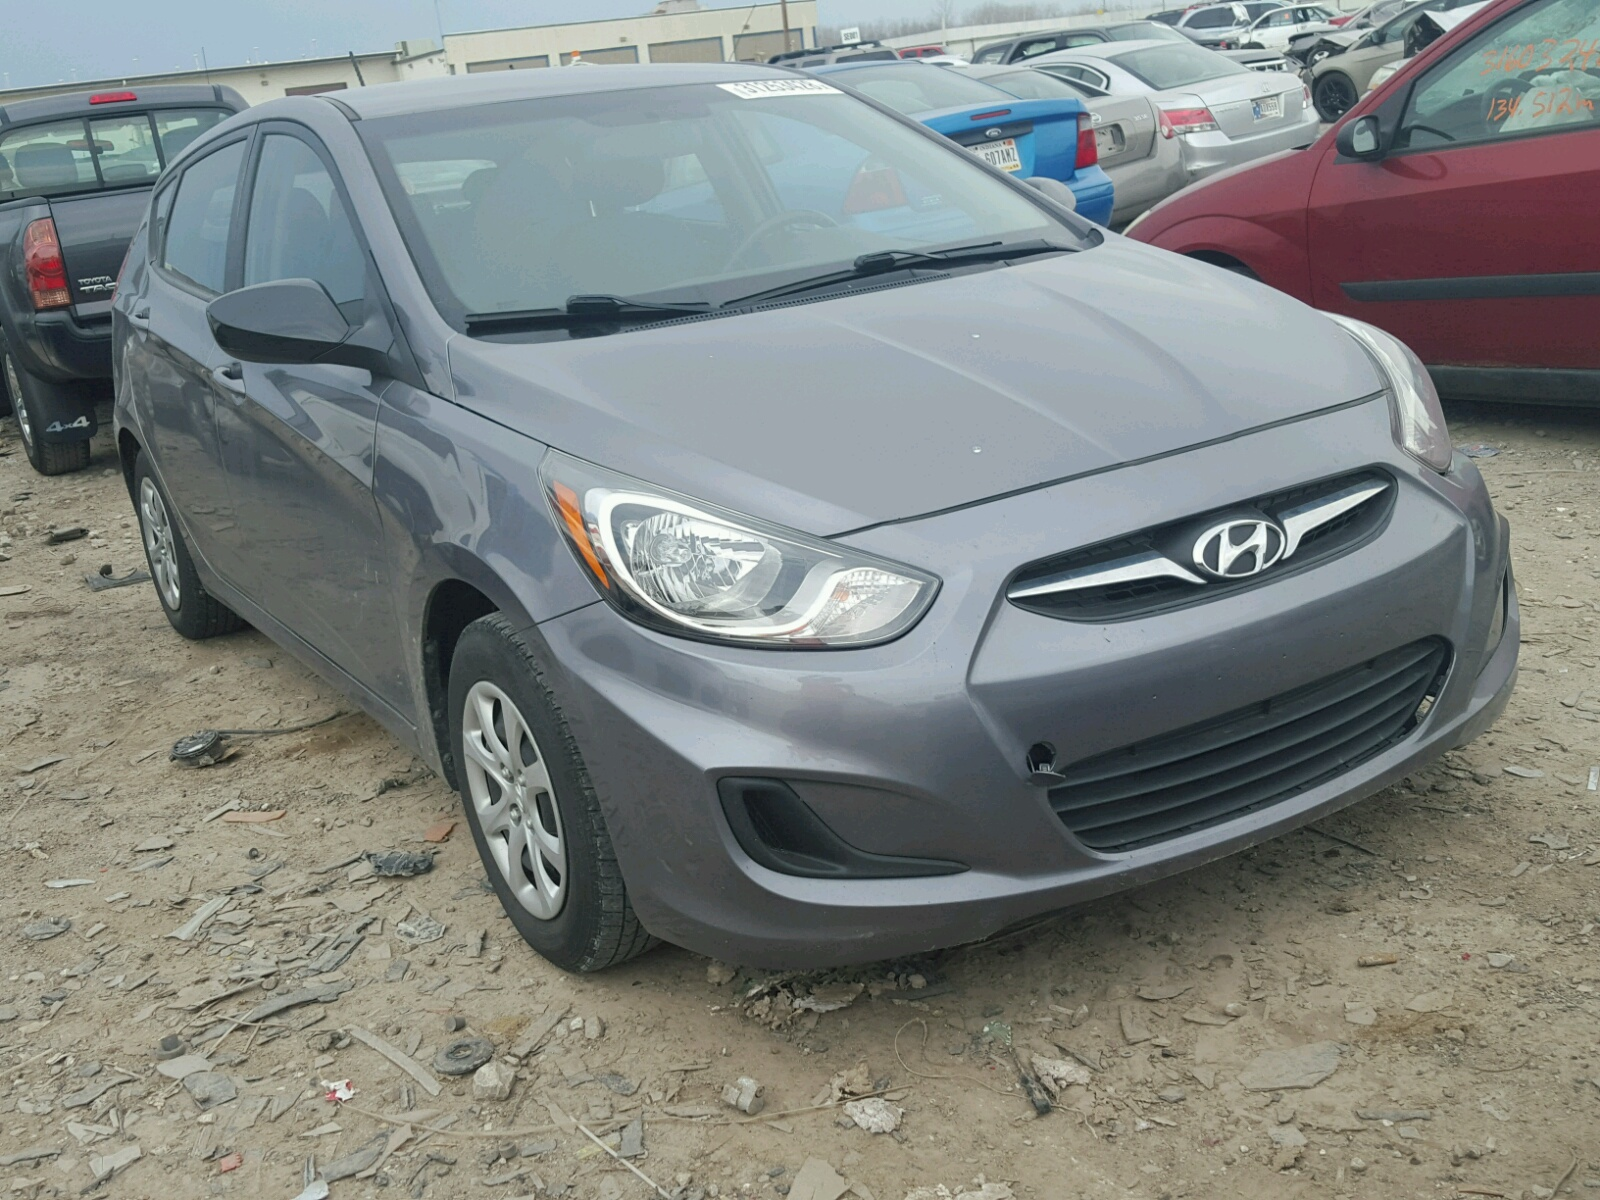 used img cars accent com indianapolis sale for auto hyundai in new and